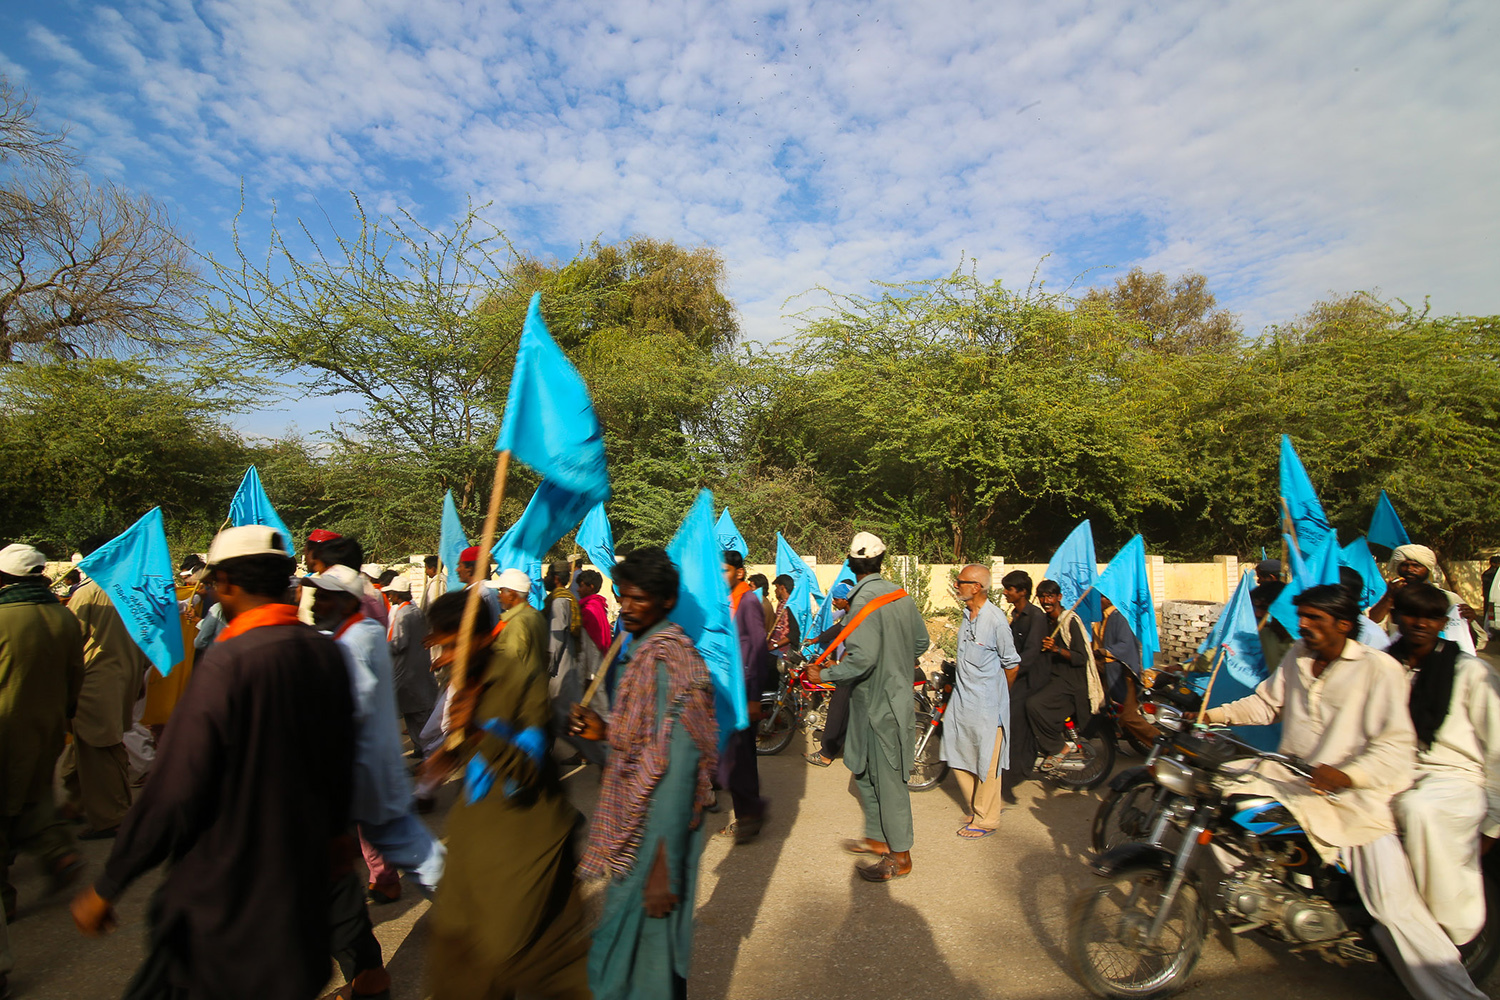 Men, women and children participate in the caravan at Umerkot.